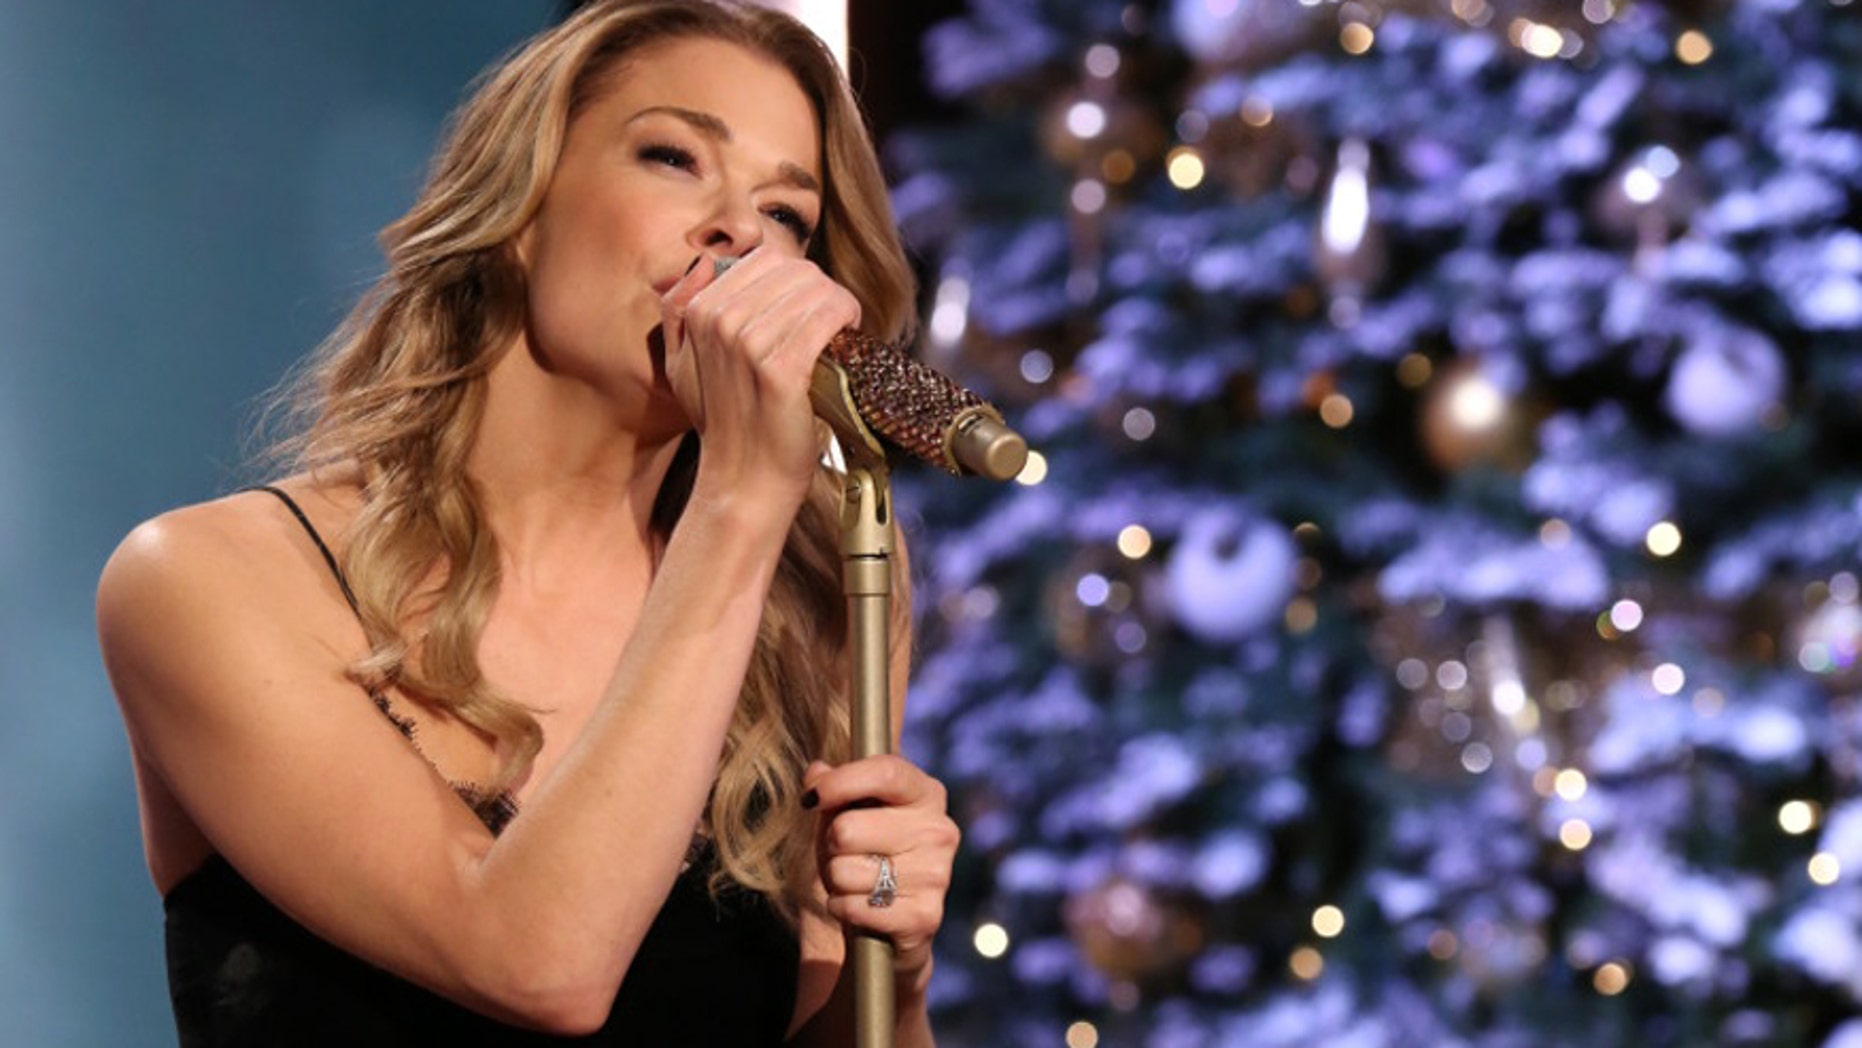 LeAnn Rimes Recreated That Coyote Ugly Bar Scene and Its All Too Much images